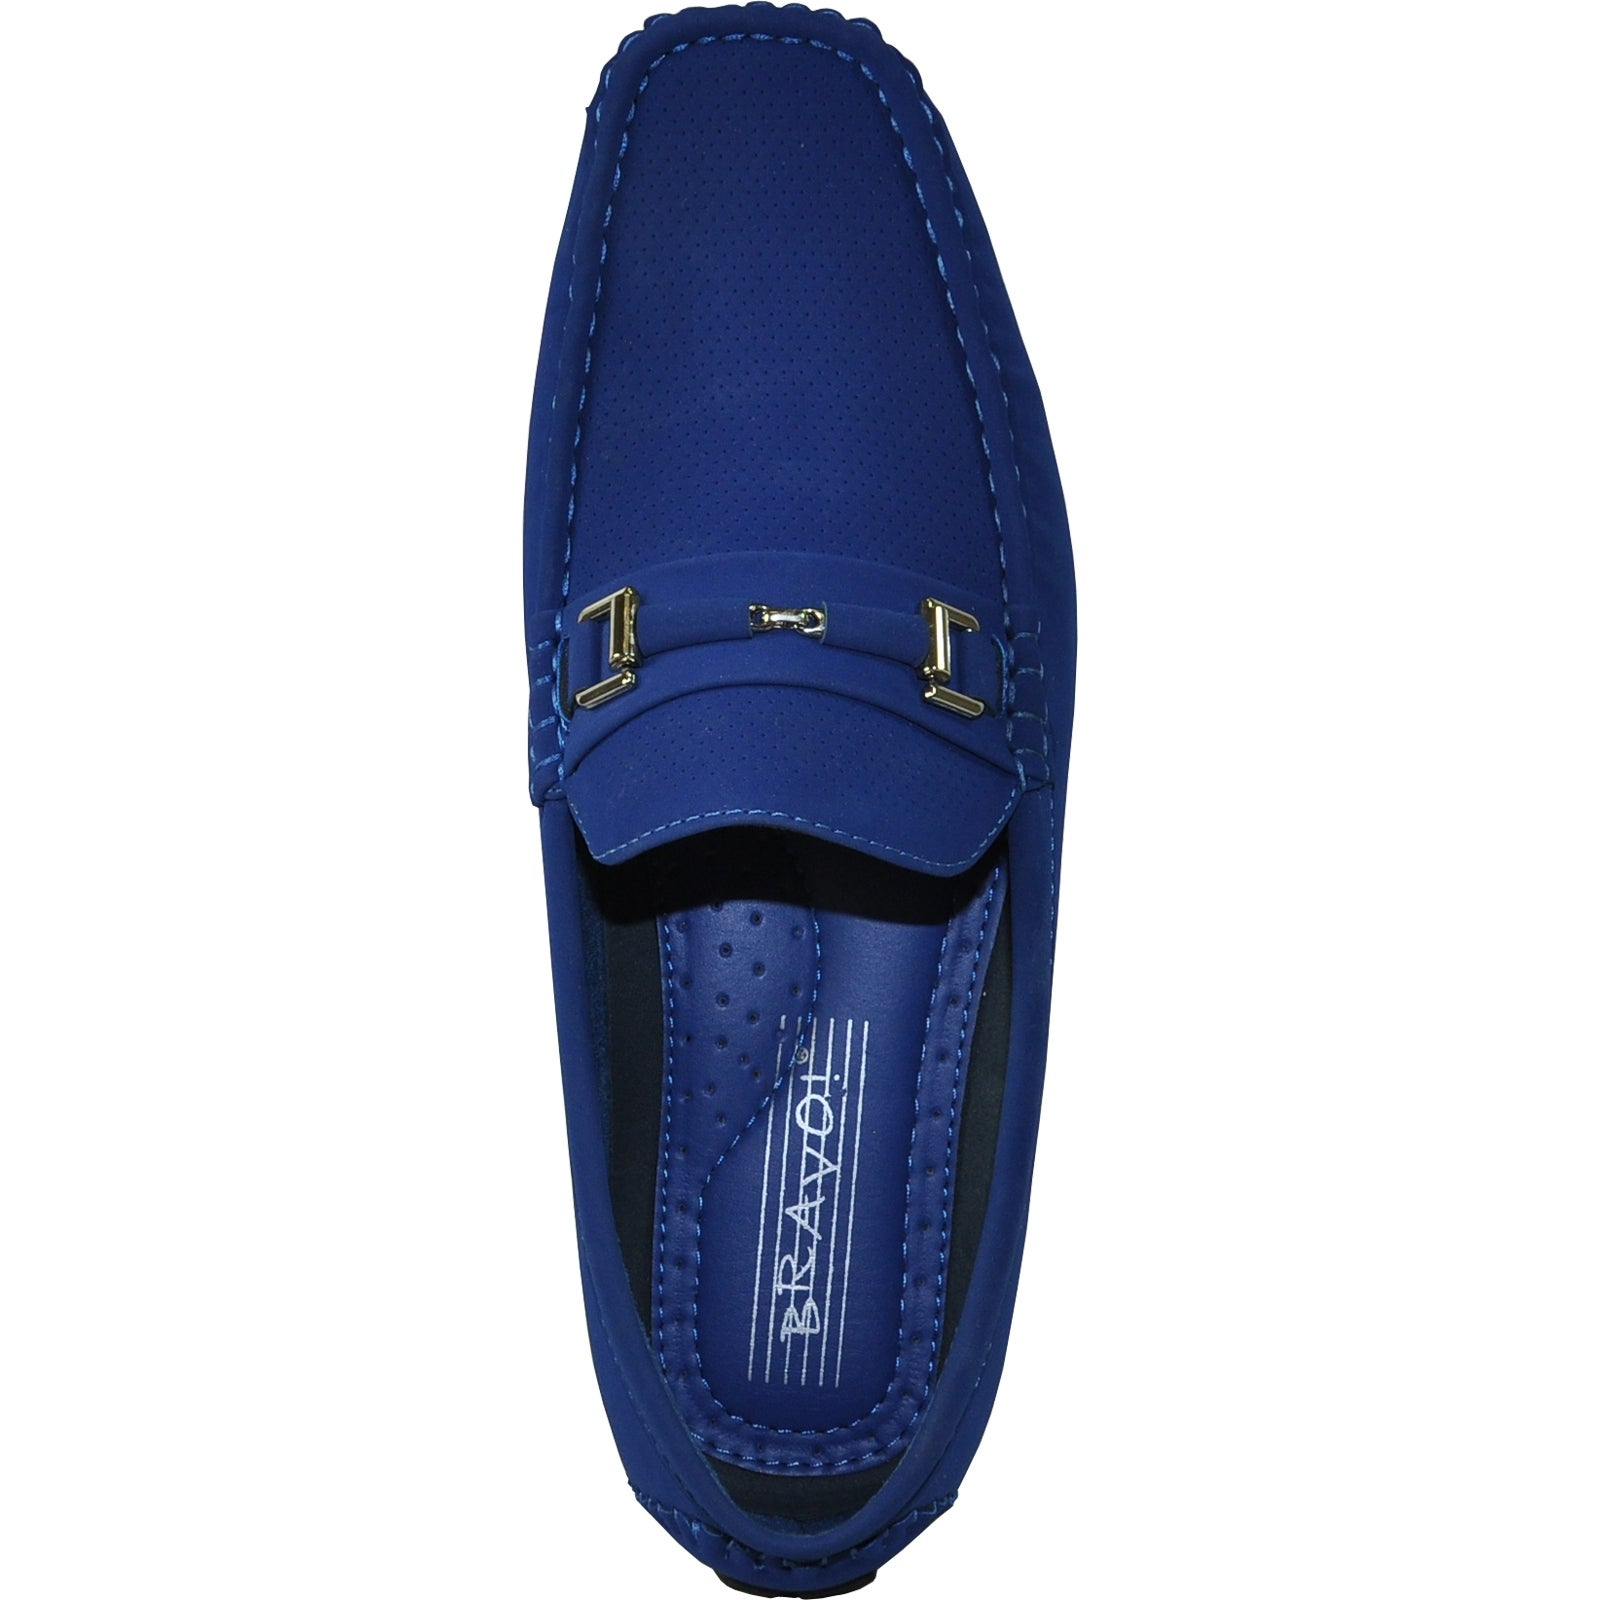 92d5a851510 Shop BRAVO Men Casual Shoe TODD-1 Driving Moccasin Royal Blue - Free  Shipping On Orders Over  45 - Overstock - 22843282